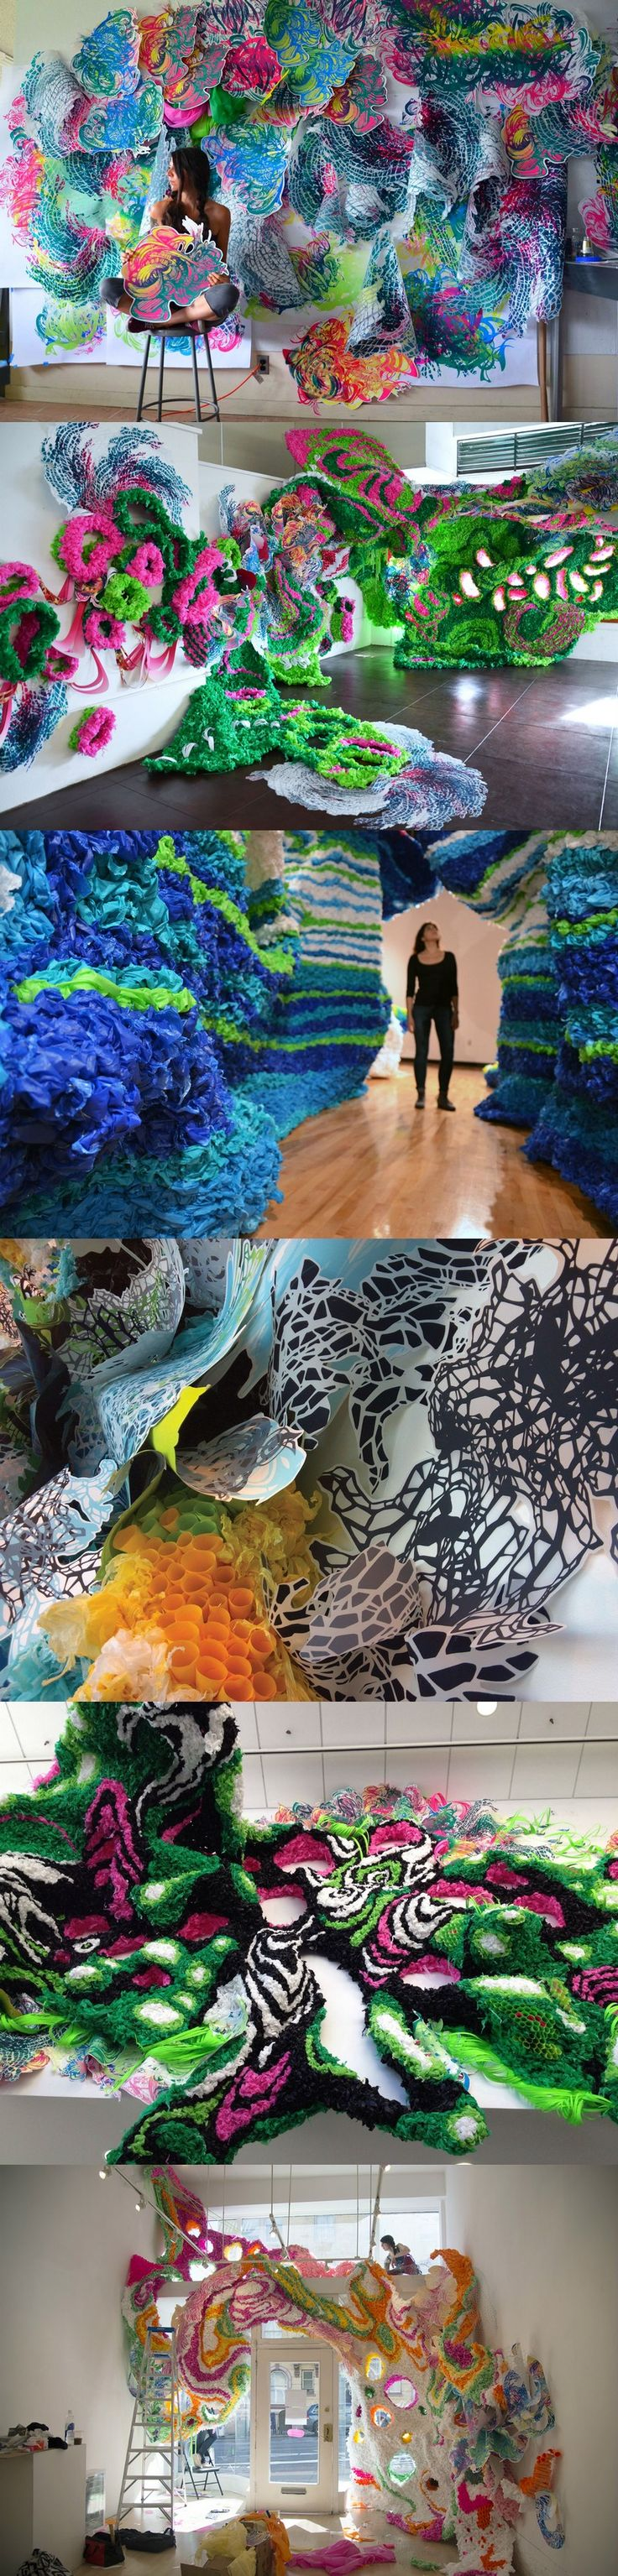 Printmaker/Installation artist Crystal Wagner's Colourful Paper Sculptures                                                                                                                                                                                 Más